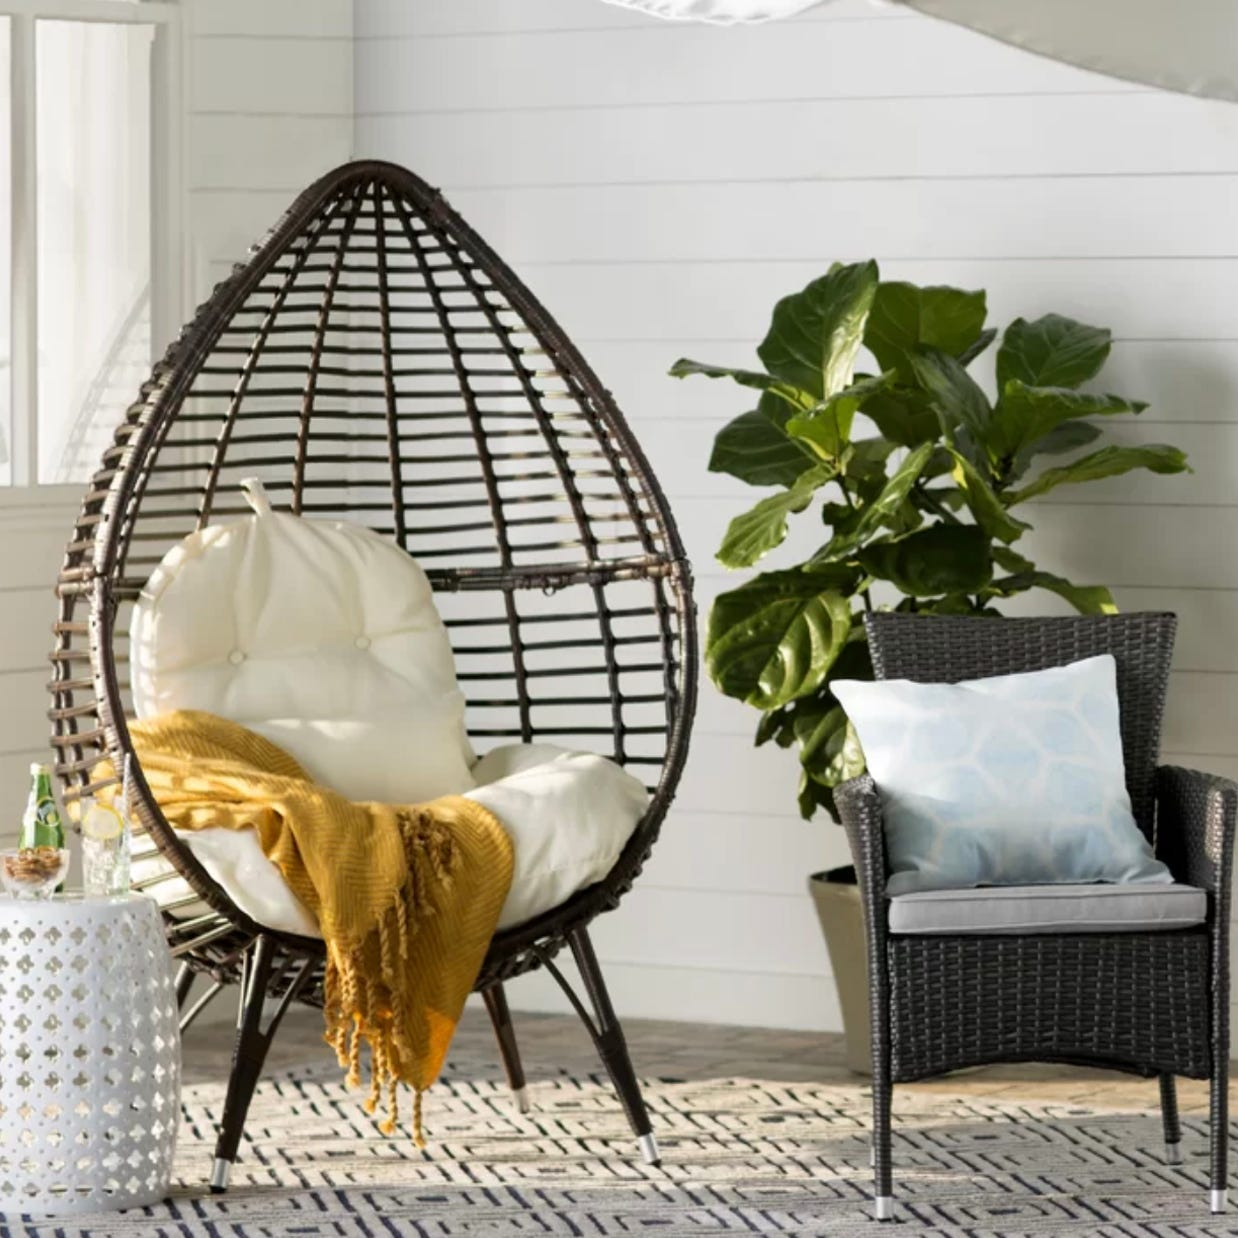 Get furniture and decor at incredible prices at Wayfair.